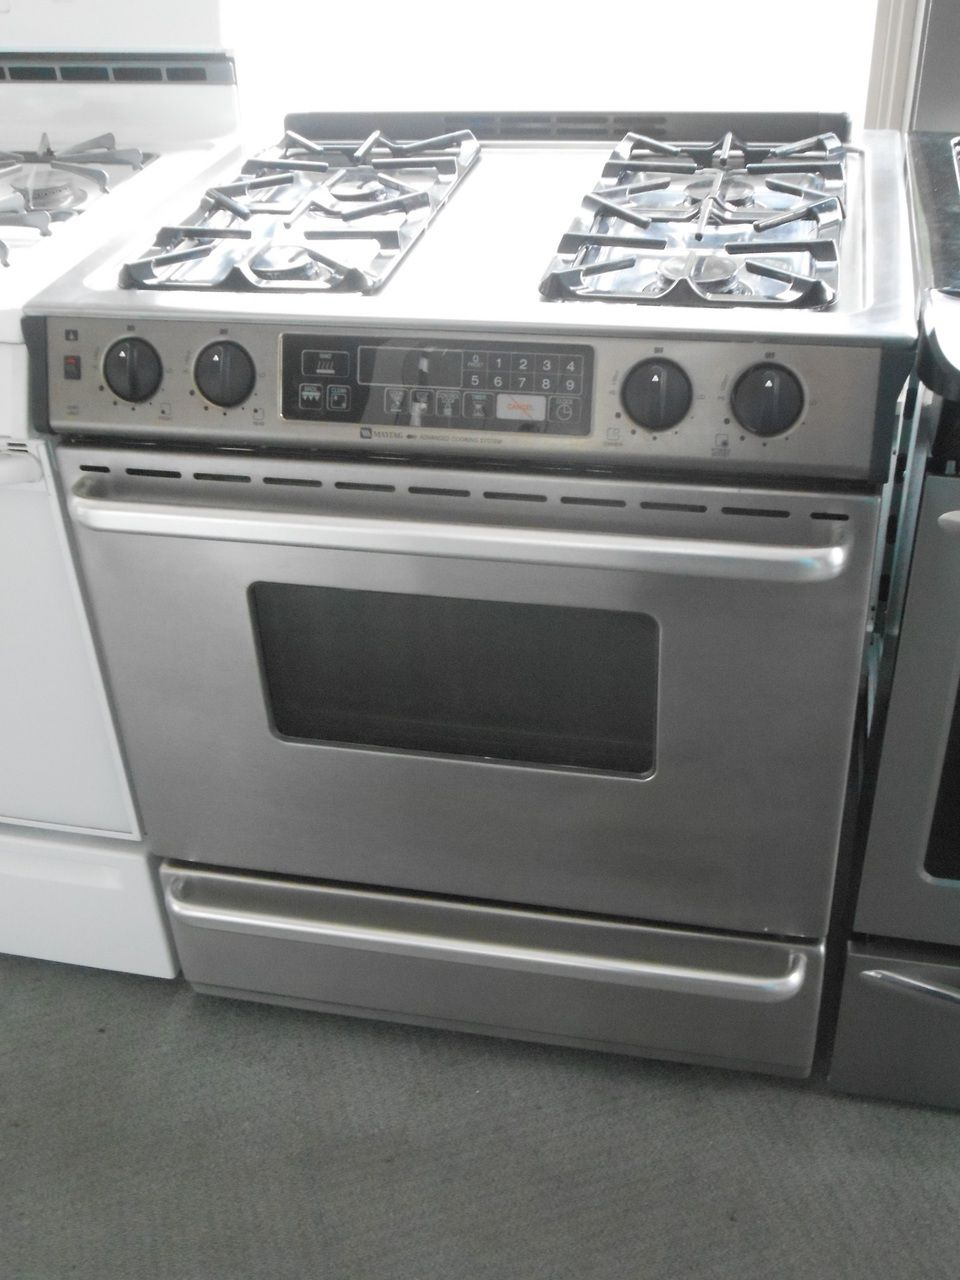 Appliance City Maytag 30 Inch Self Clean Slide In Gas Range 4